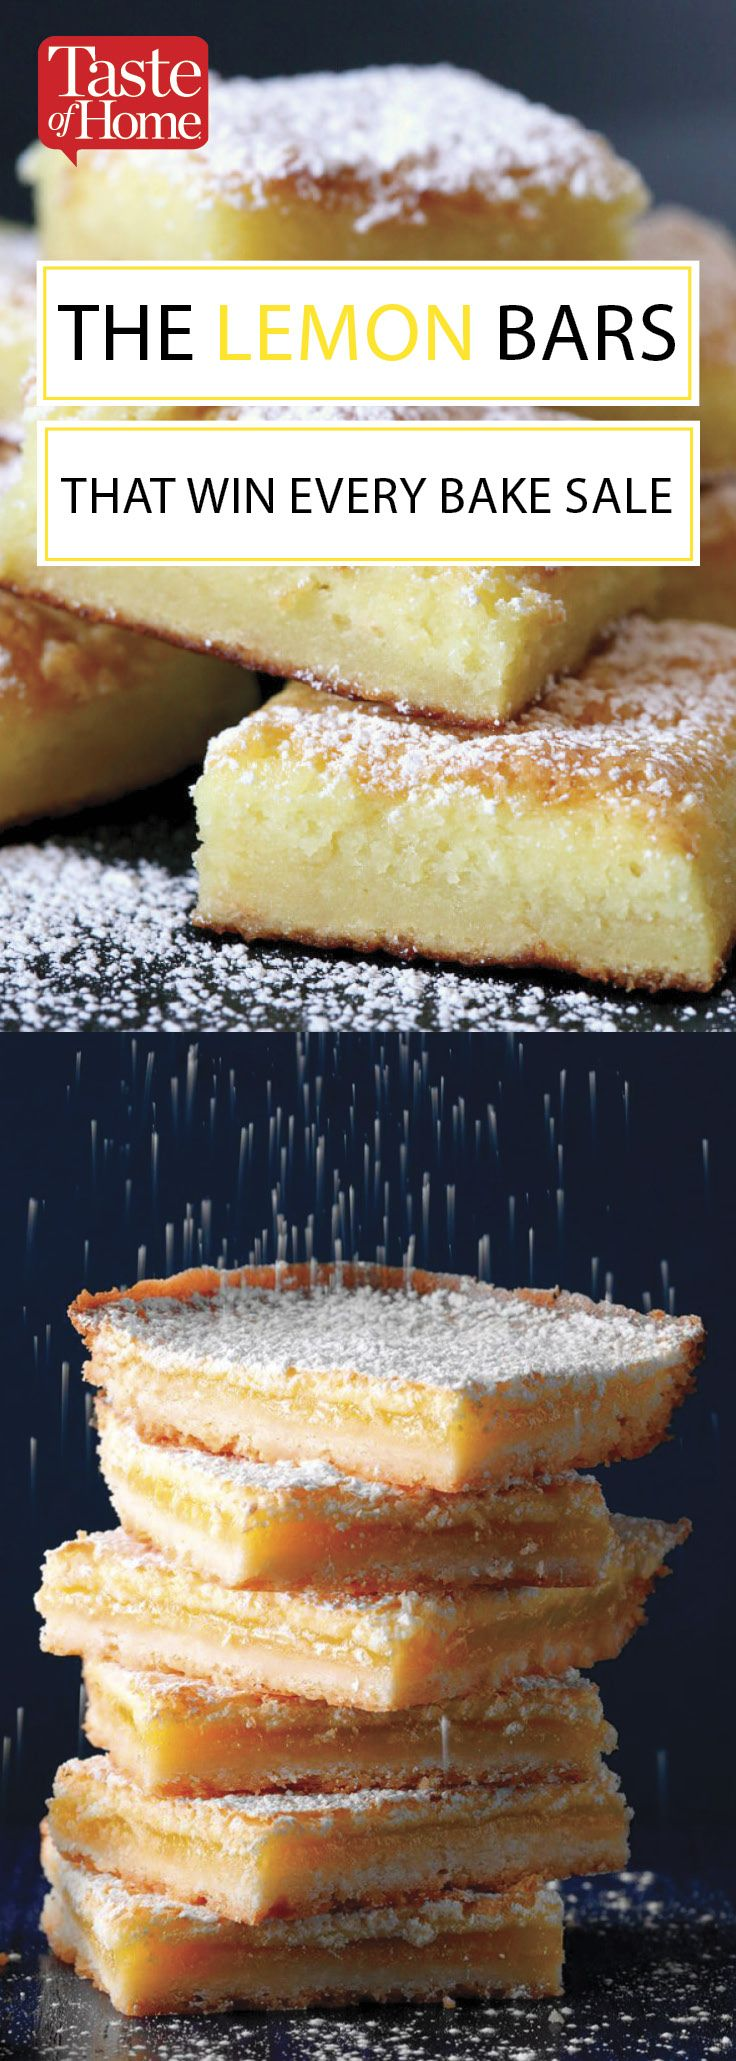 The Lemon Bars That Win Every Bake Sale